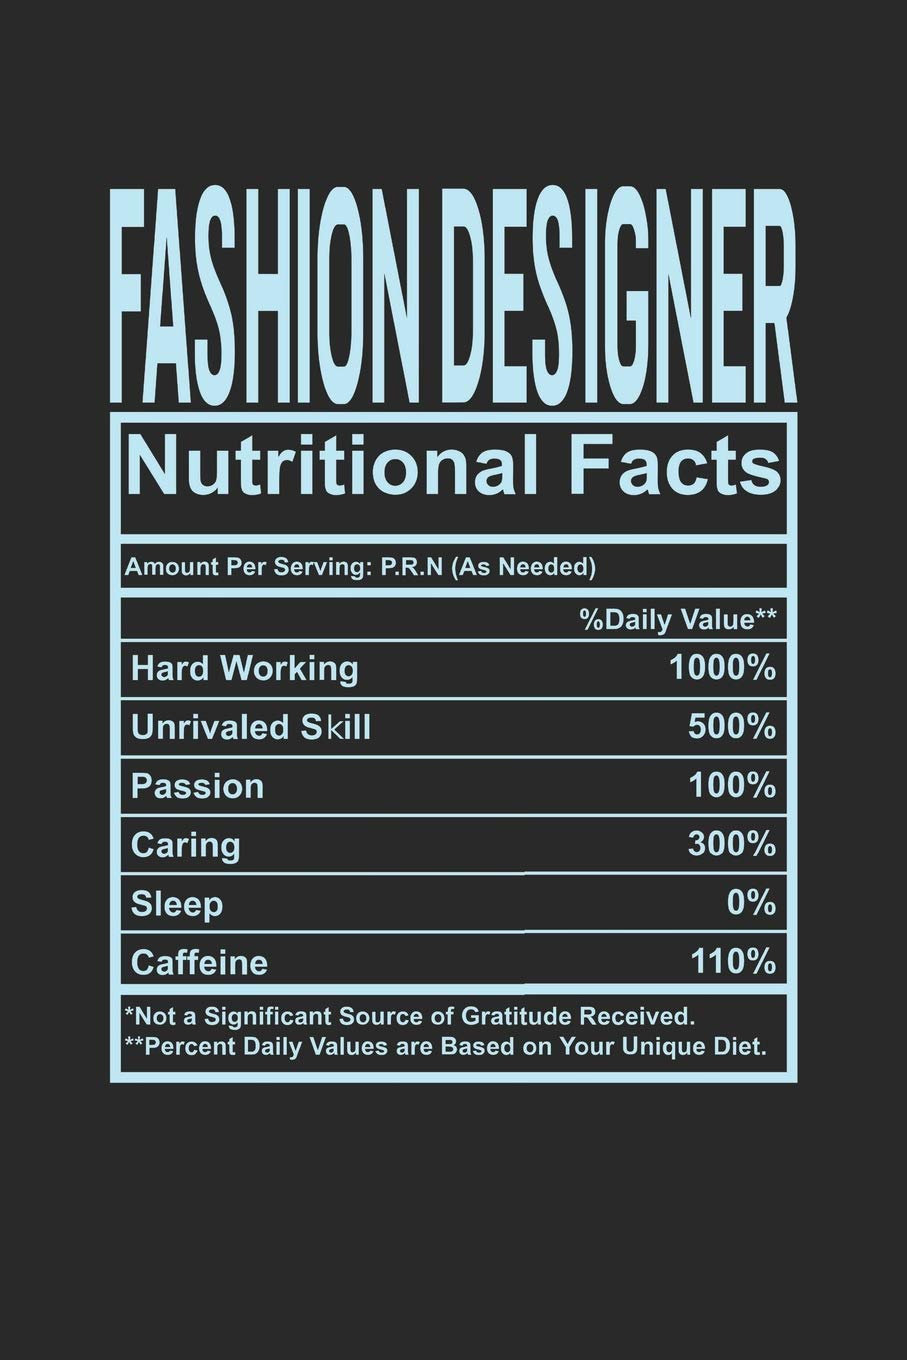 Amazon Com Fashion Designer Nutritional Facts 6x9 Checkered Notebook 120 Pages Composition Book And Journal Funny Gift For Your Favorite Fashion Designer 9781074652876 Publishing Dennex Books